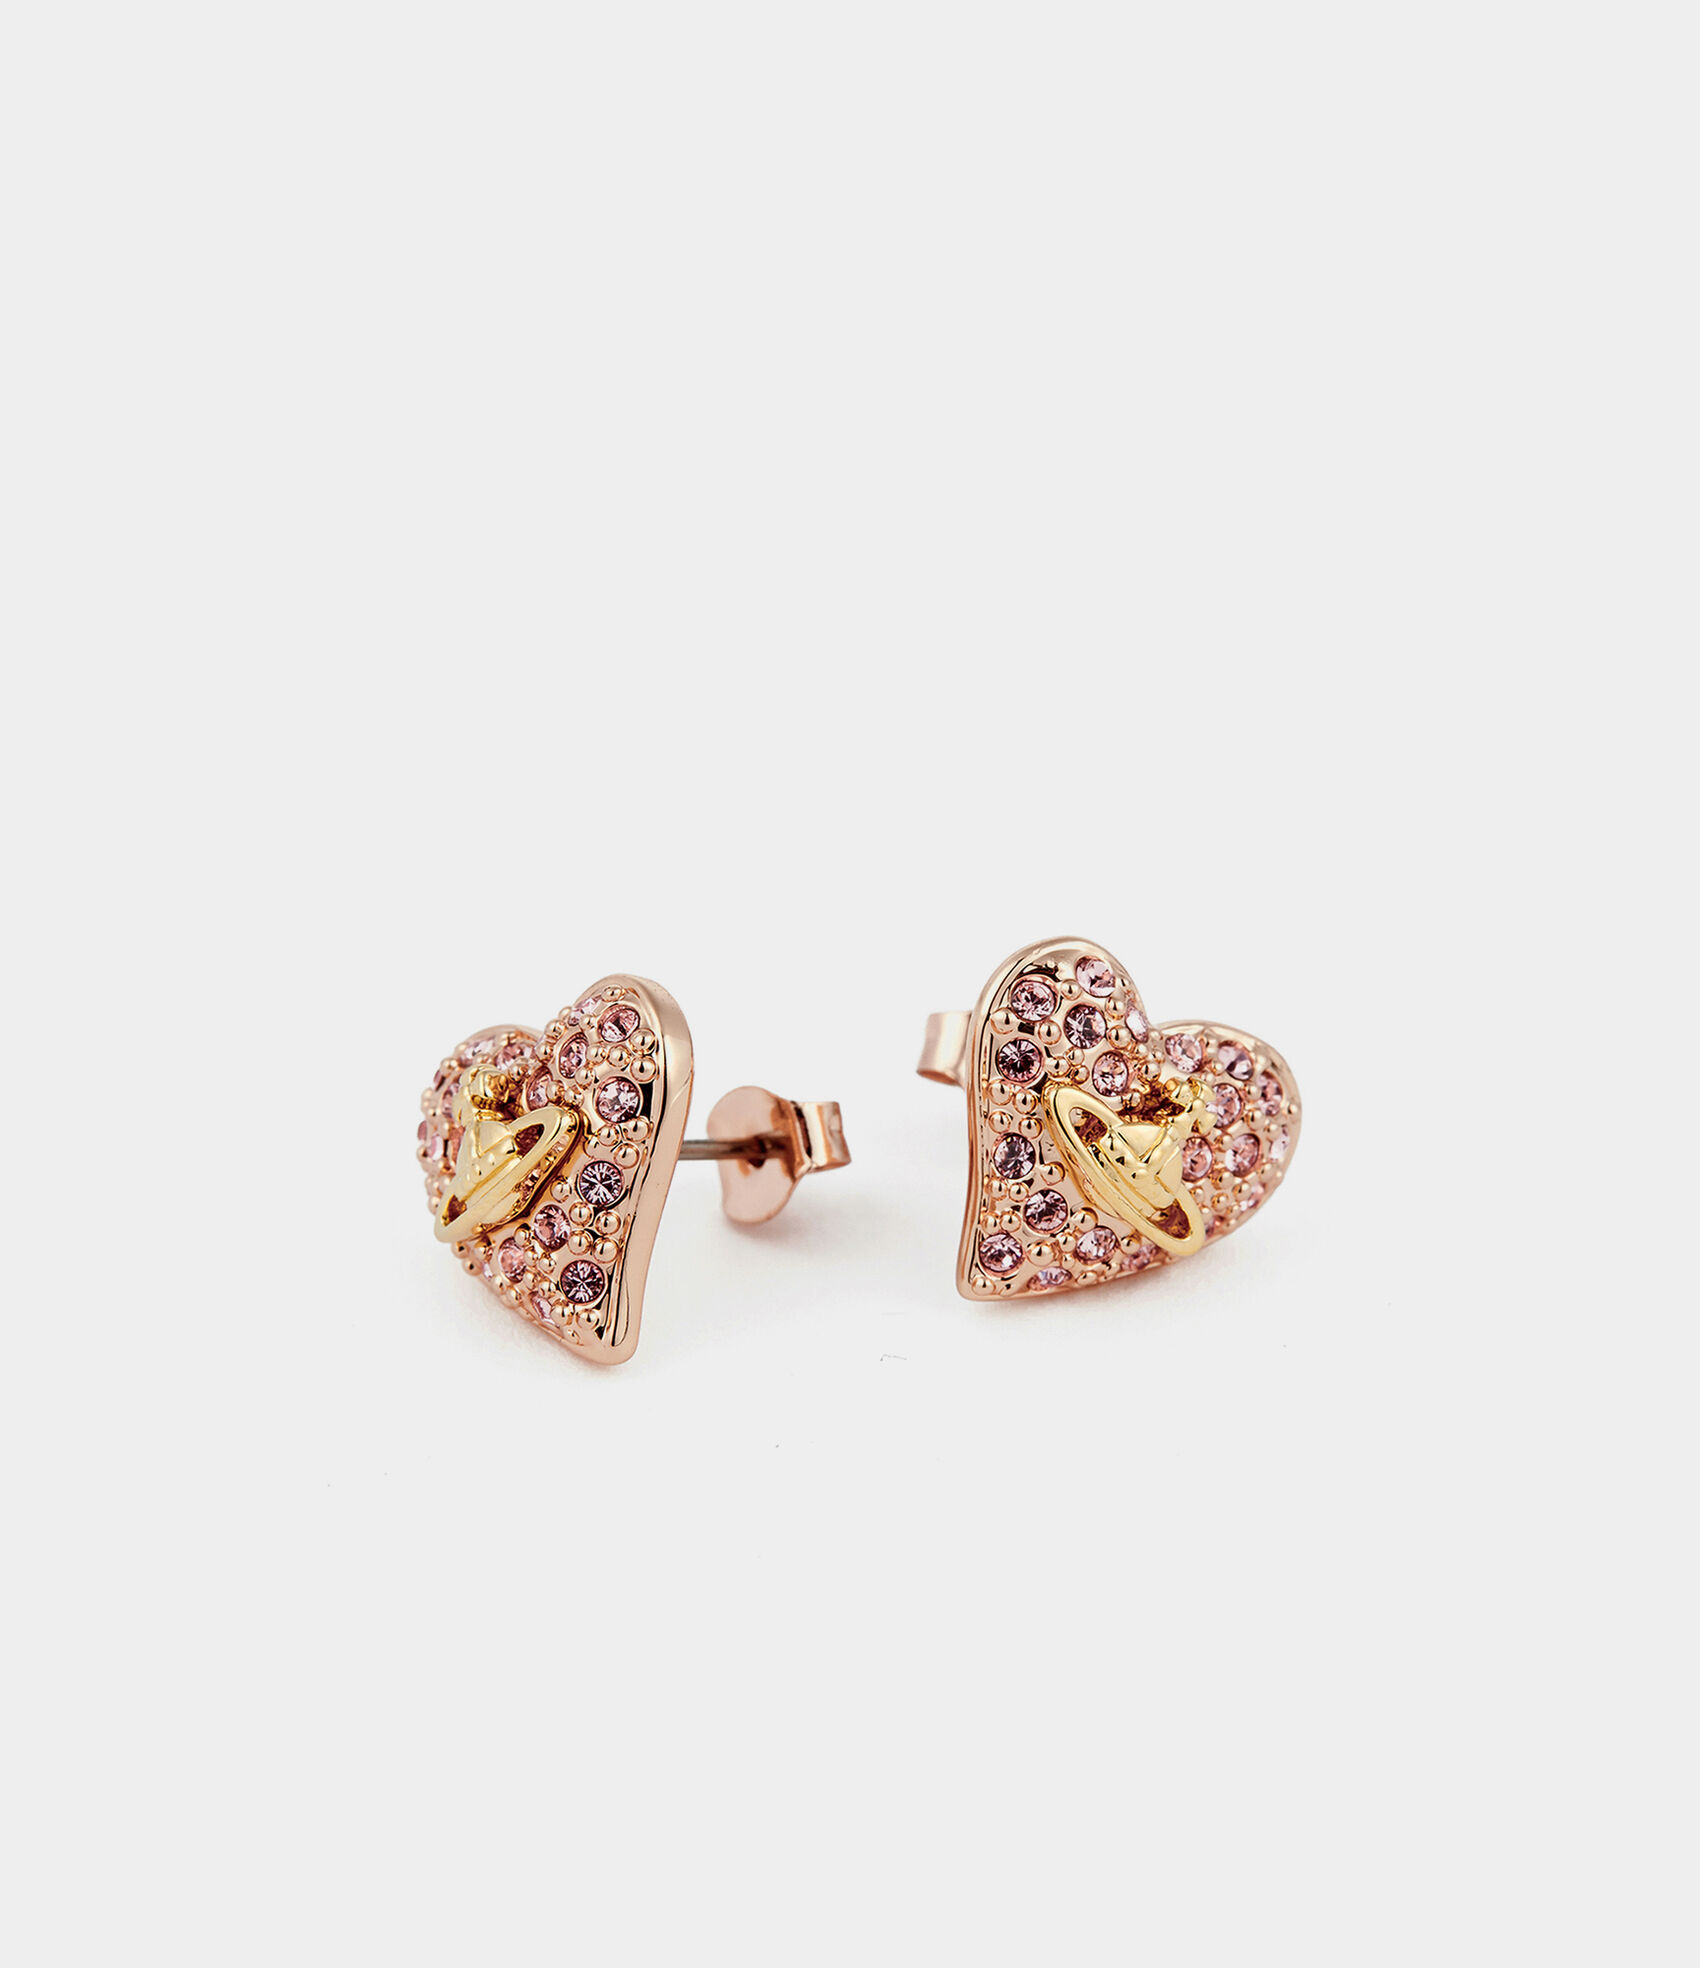 fd1e0a999 Tiny Diamante Earrings | Women's Earrings | Vivienne Westwood